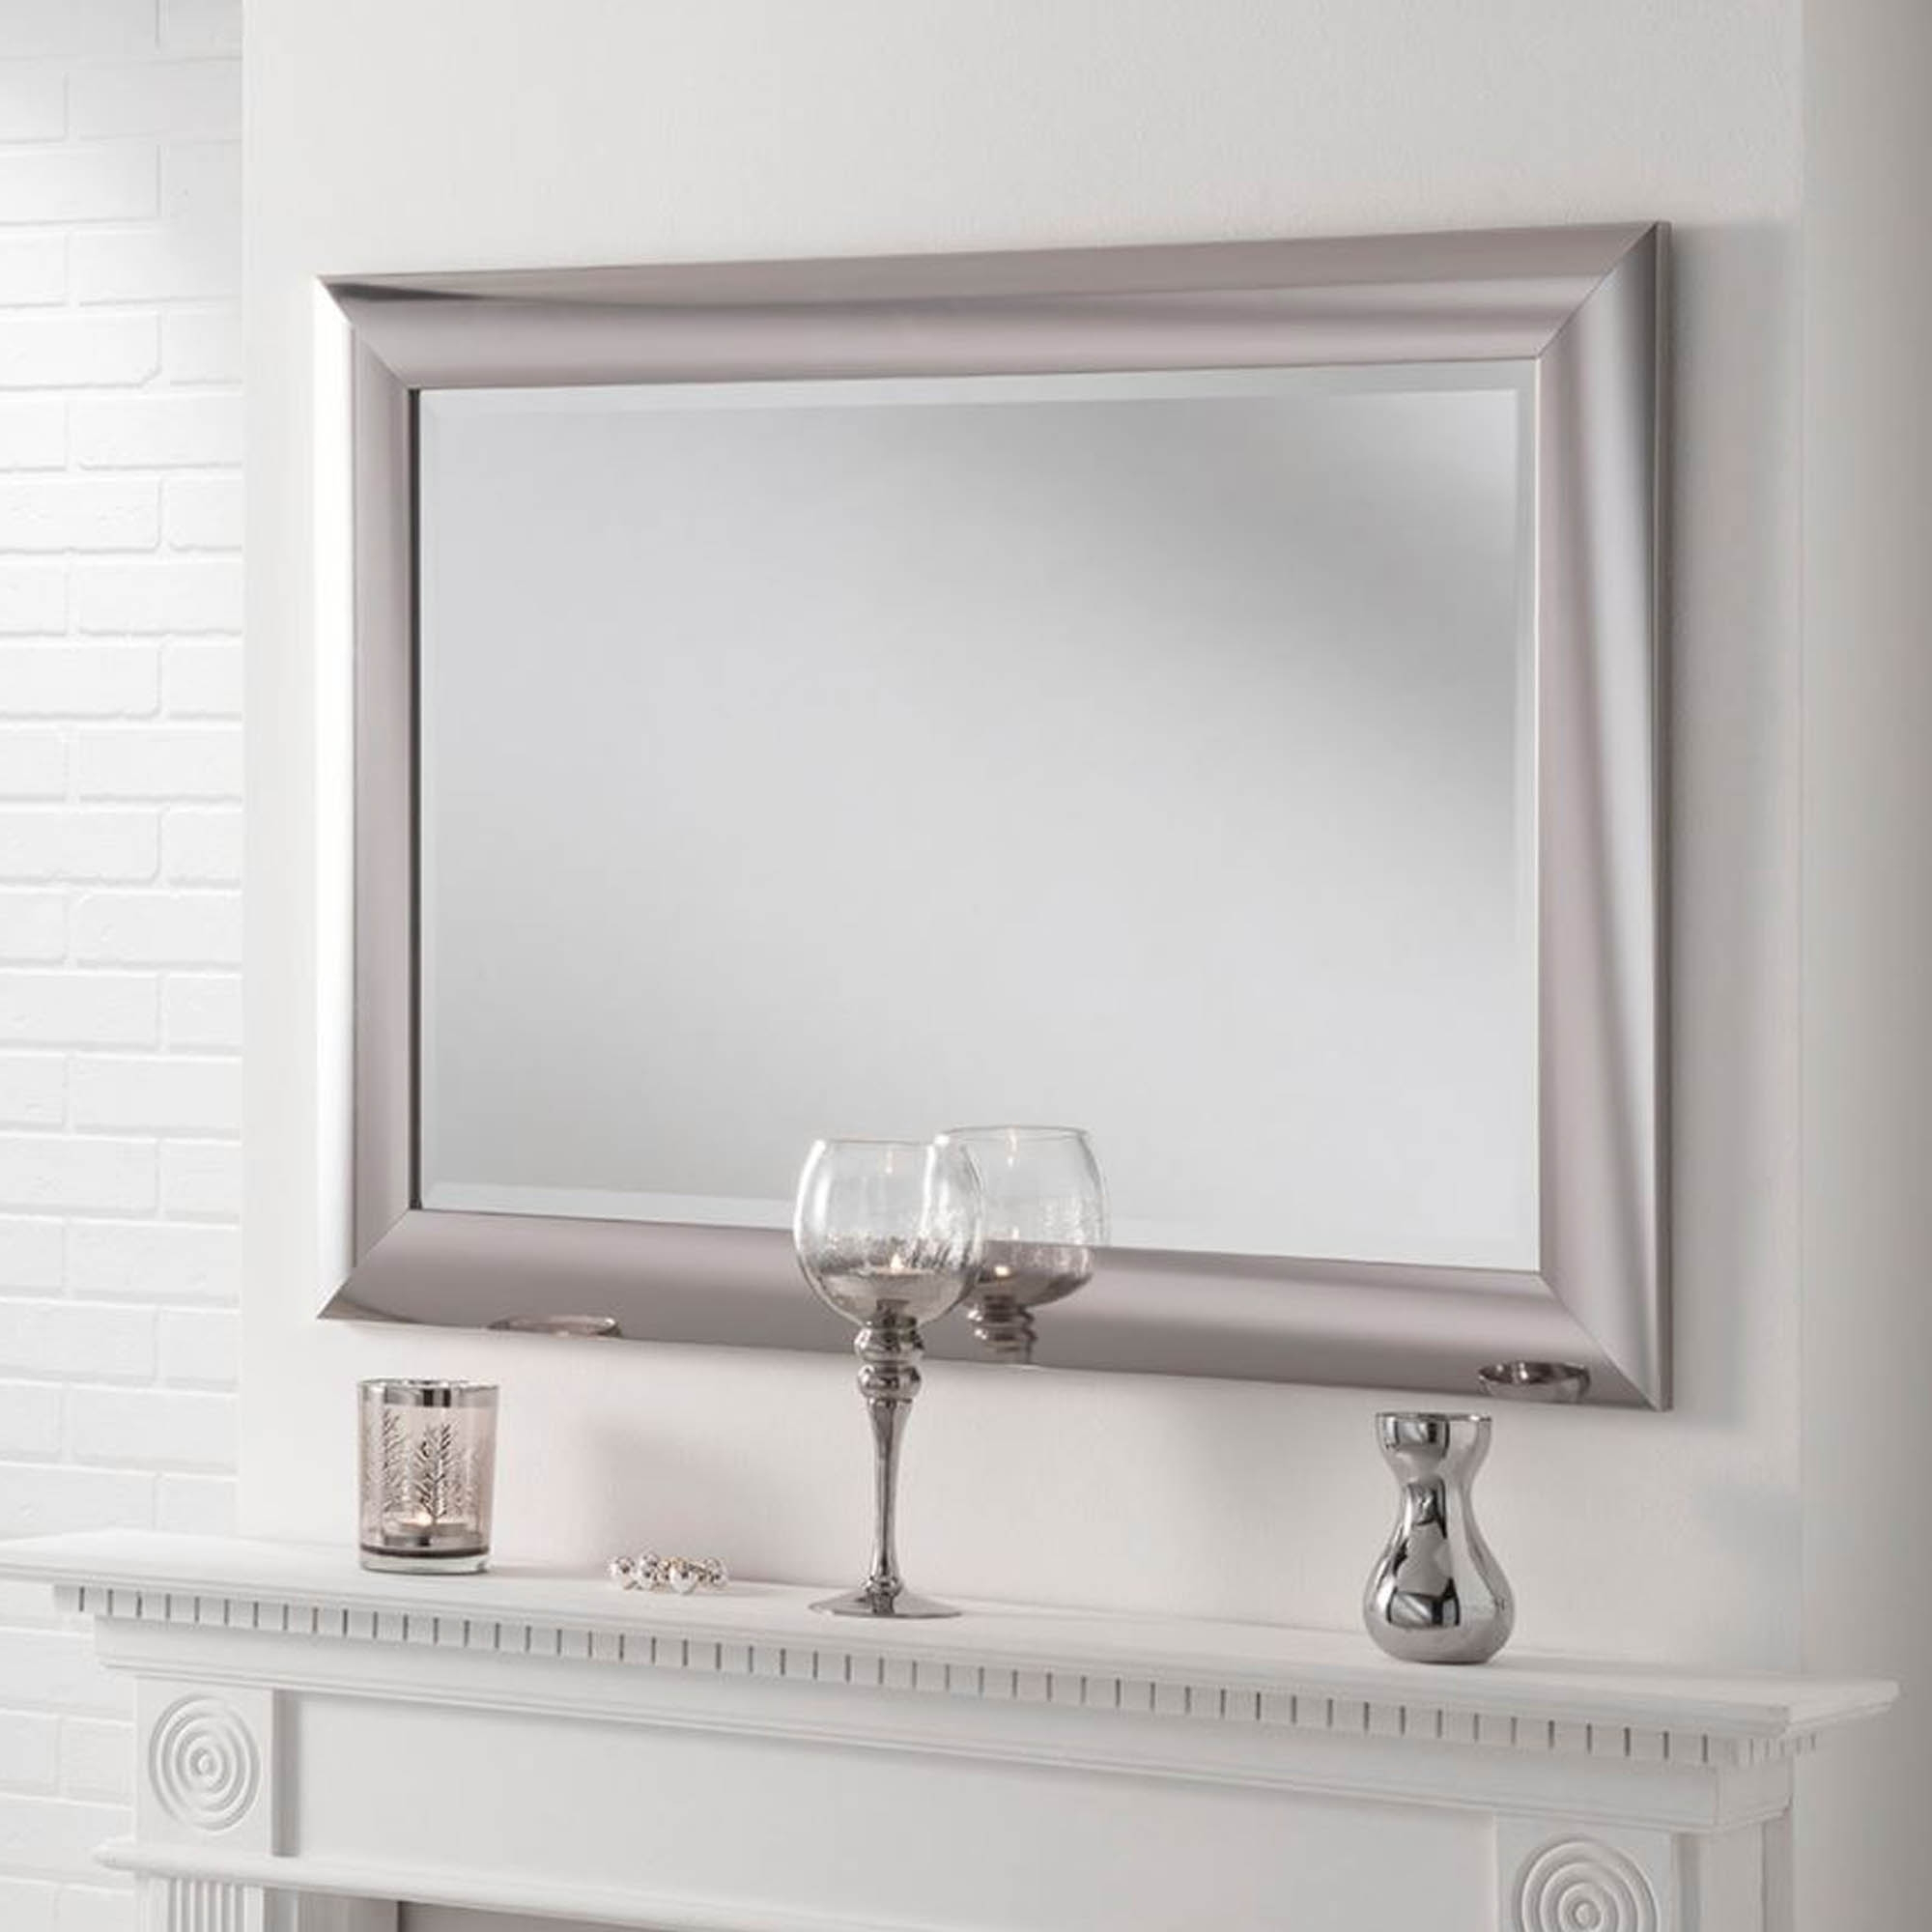 Popular Chrome Bevelled Wall Mirror Regarding Chrome Wall Mirrors (View 1 of 20)